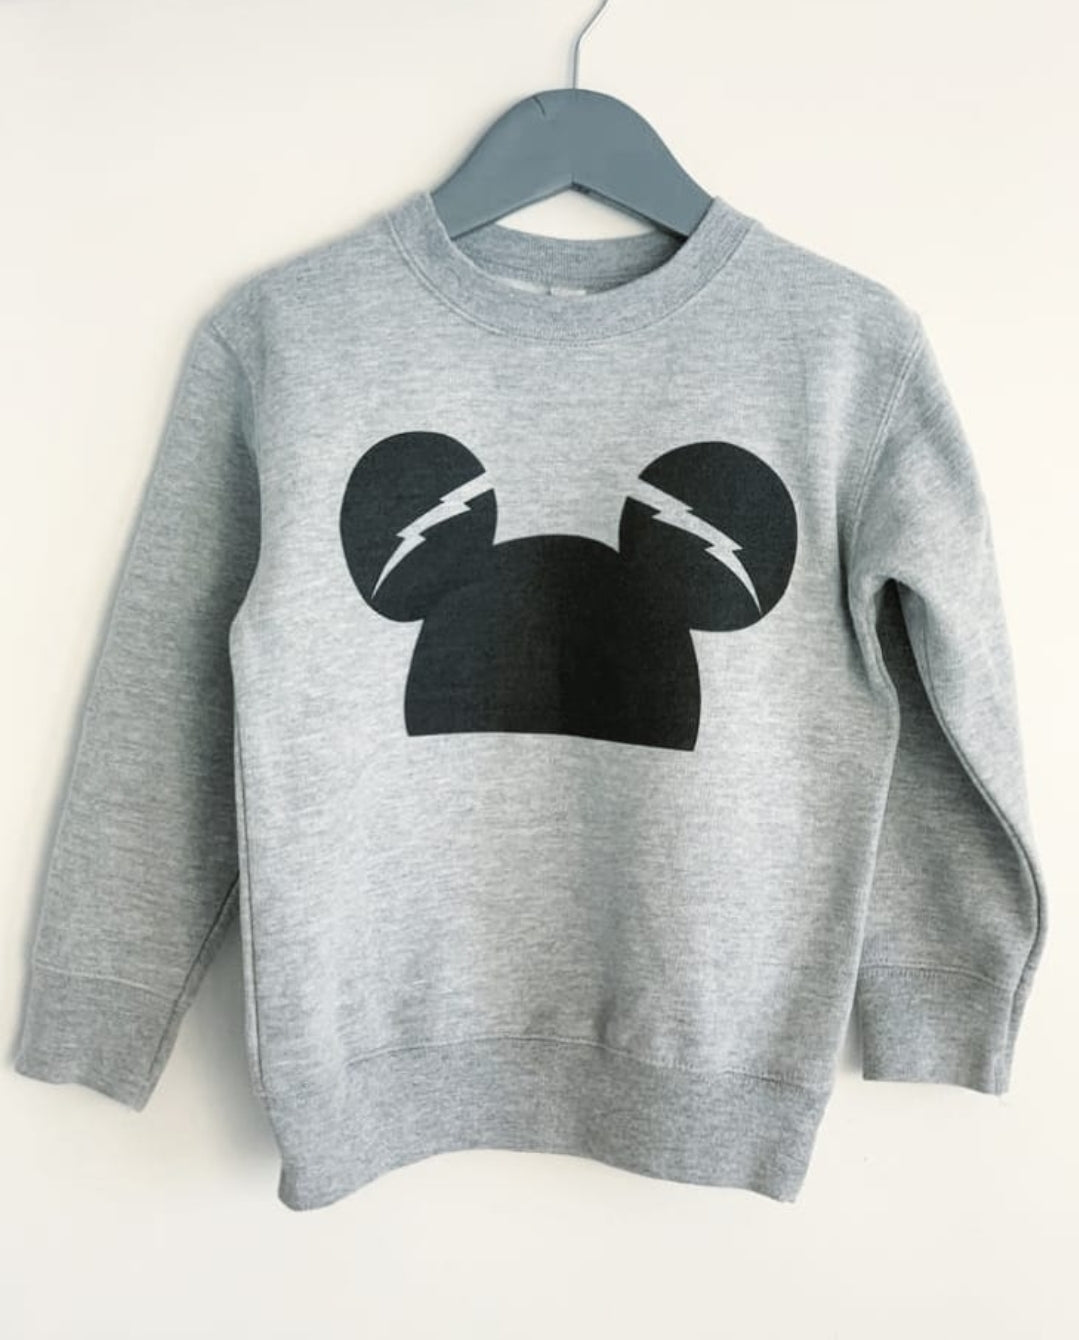 Micke Mouse grey kids sweatshirt ethically made with 60% cotton and 40% polyester